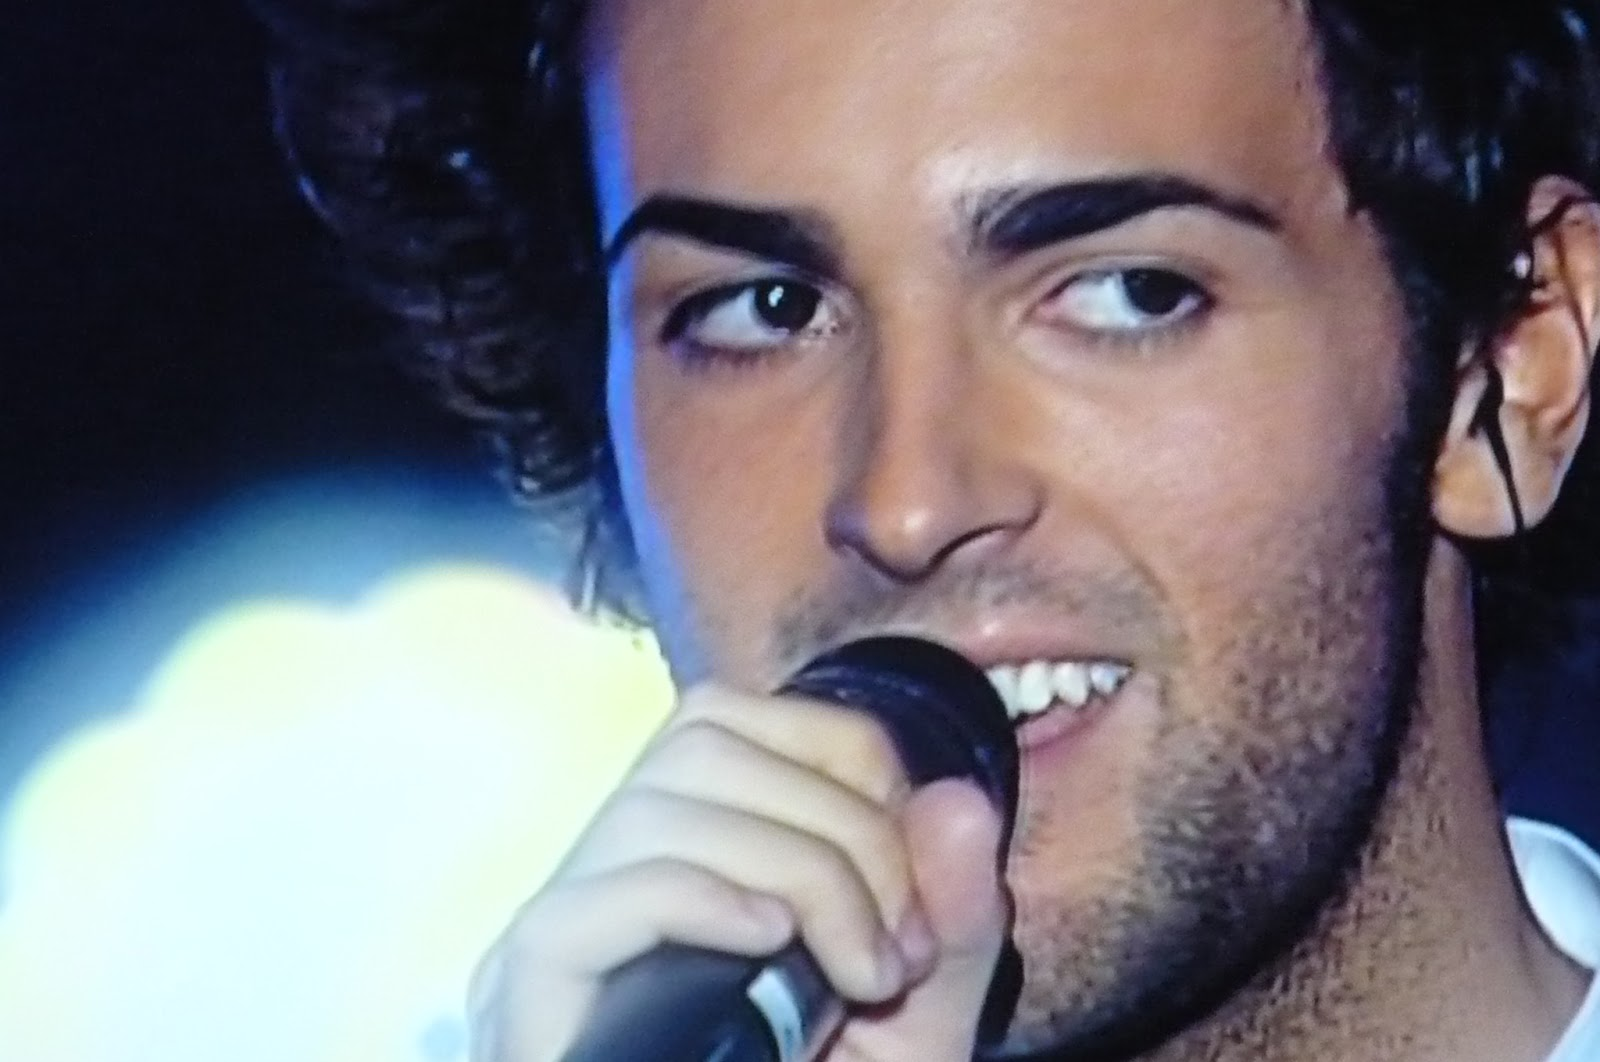 Marco Mengoni Non Me Ne Accorgo Testo Video Download